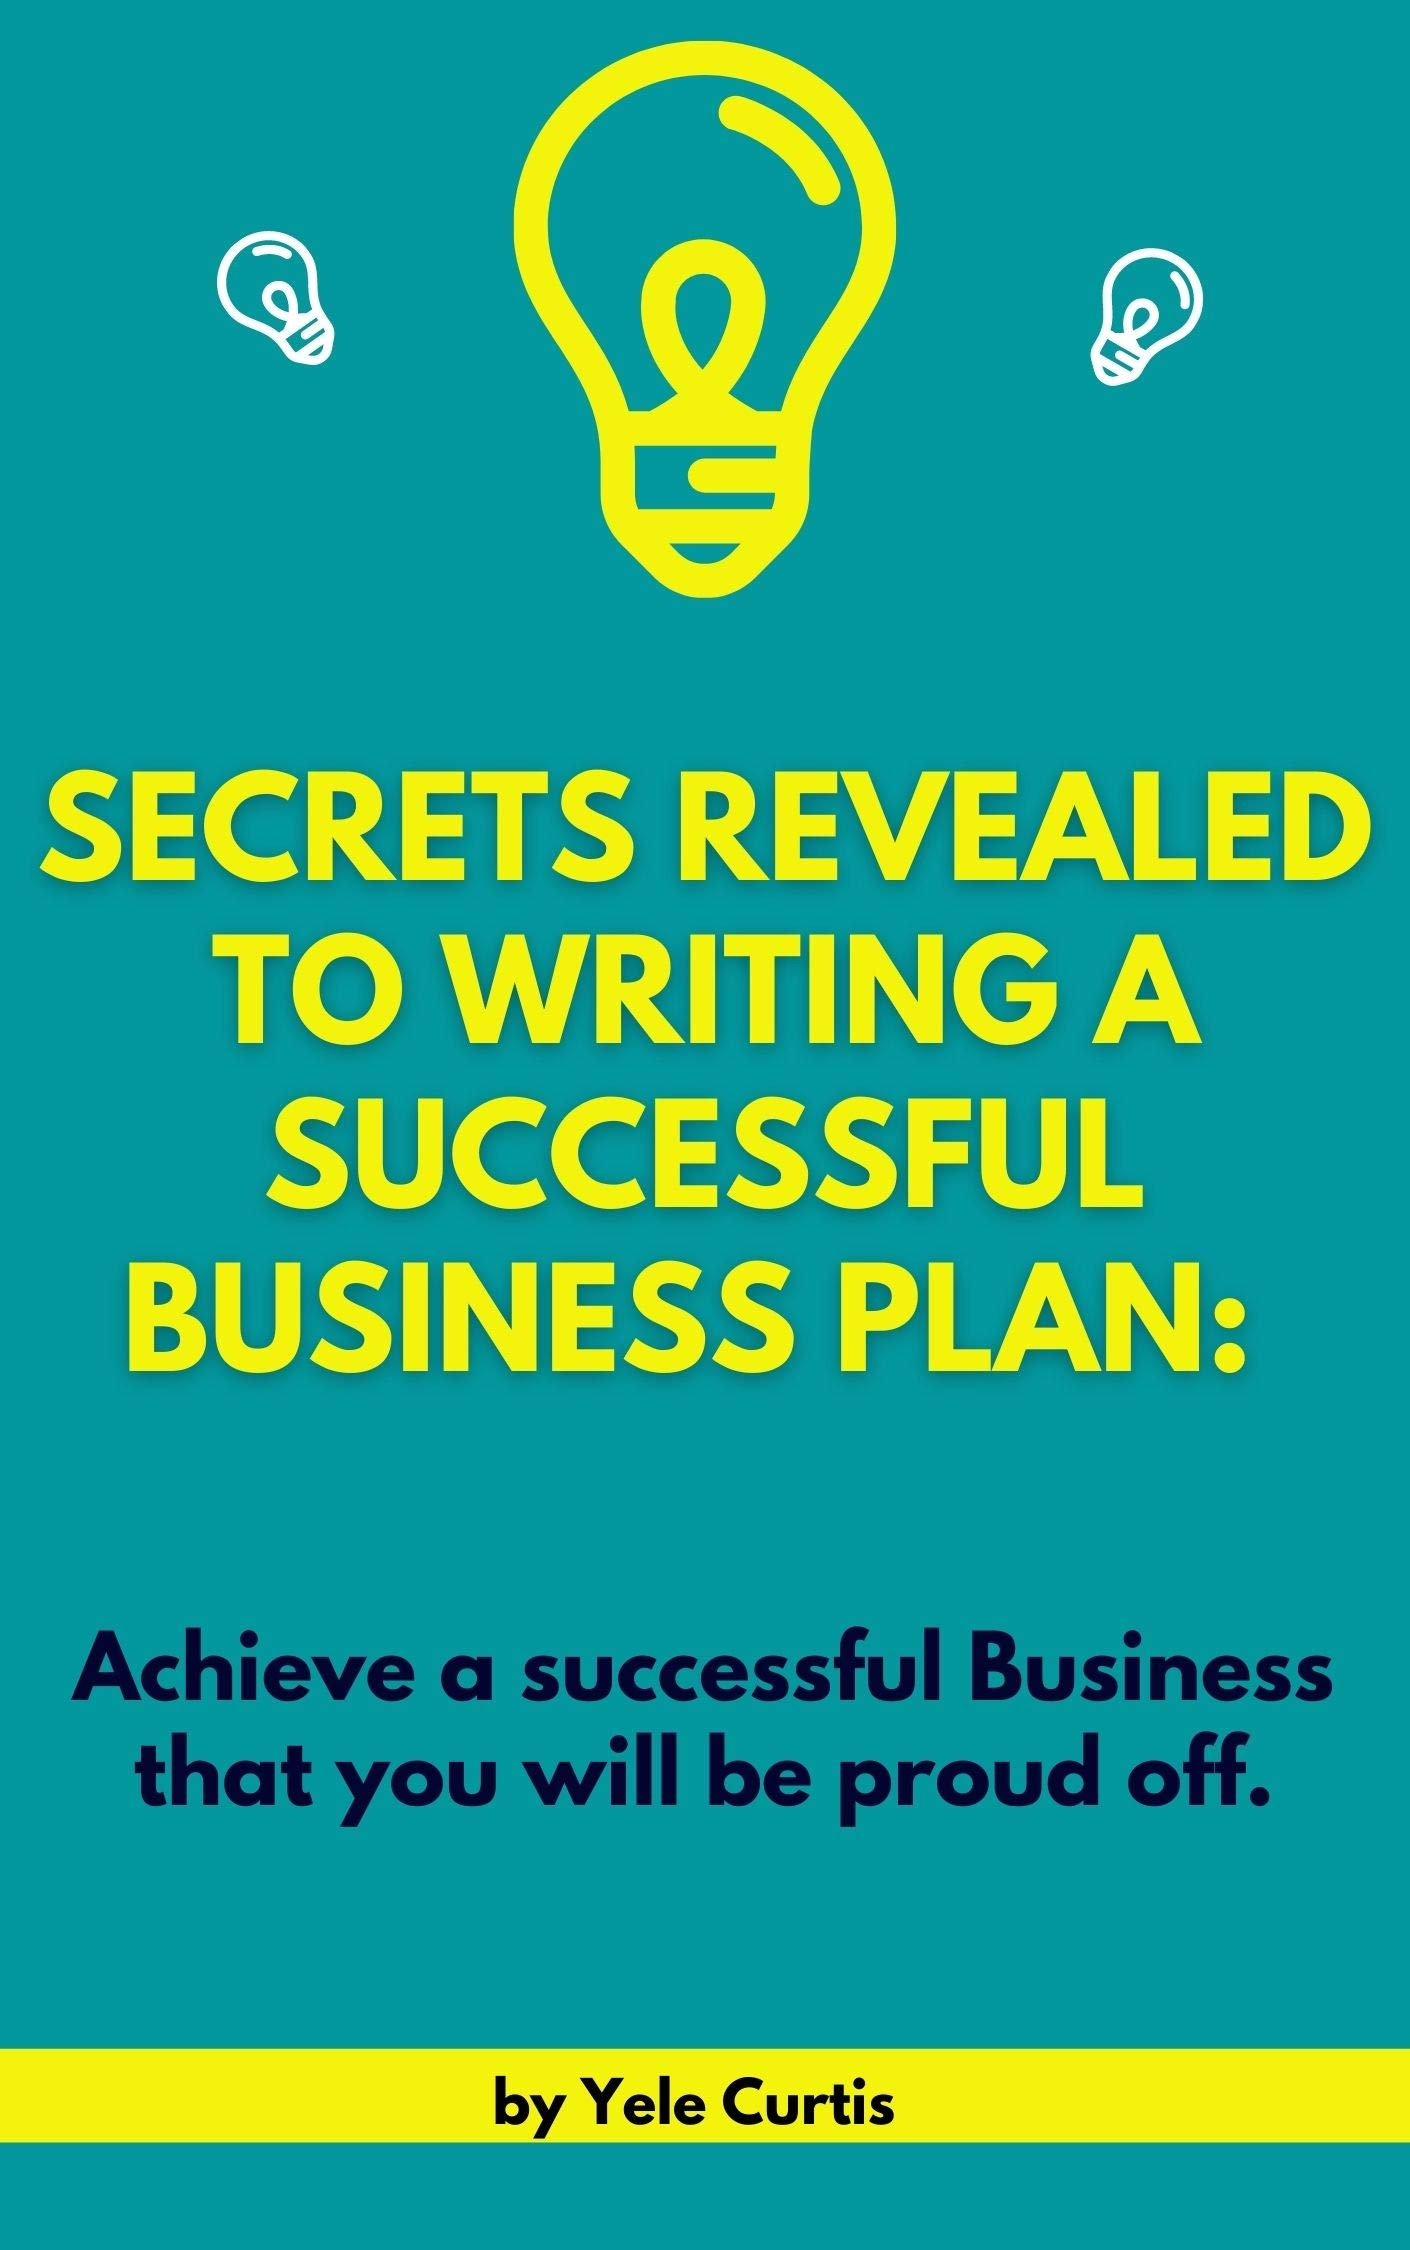 SECRETS REVEALED TO WRITING A SUCCESSFUL BUSINESS PLAN: Achieve a Successful Business that you will be proud off